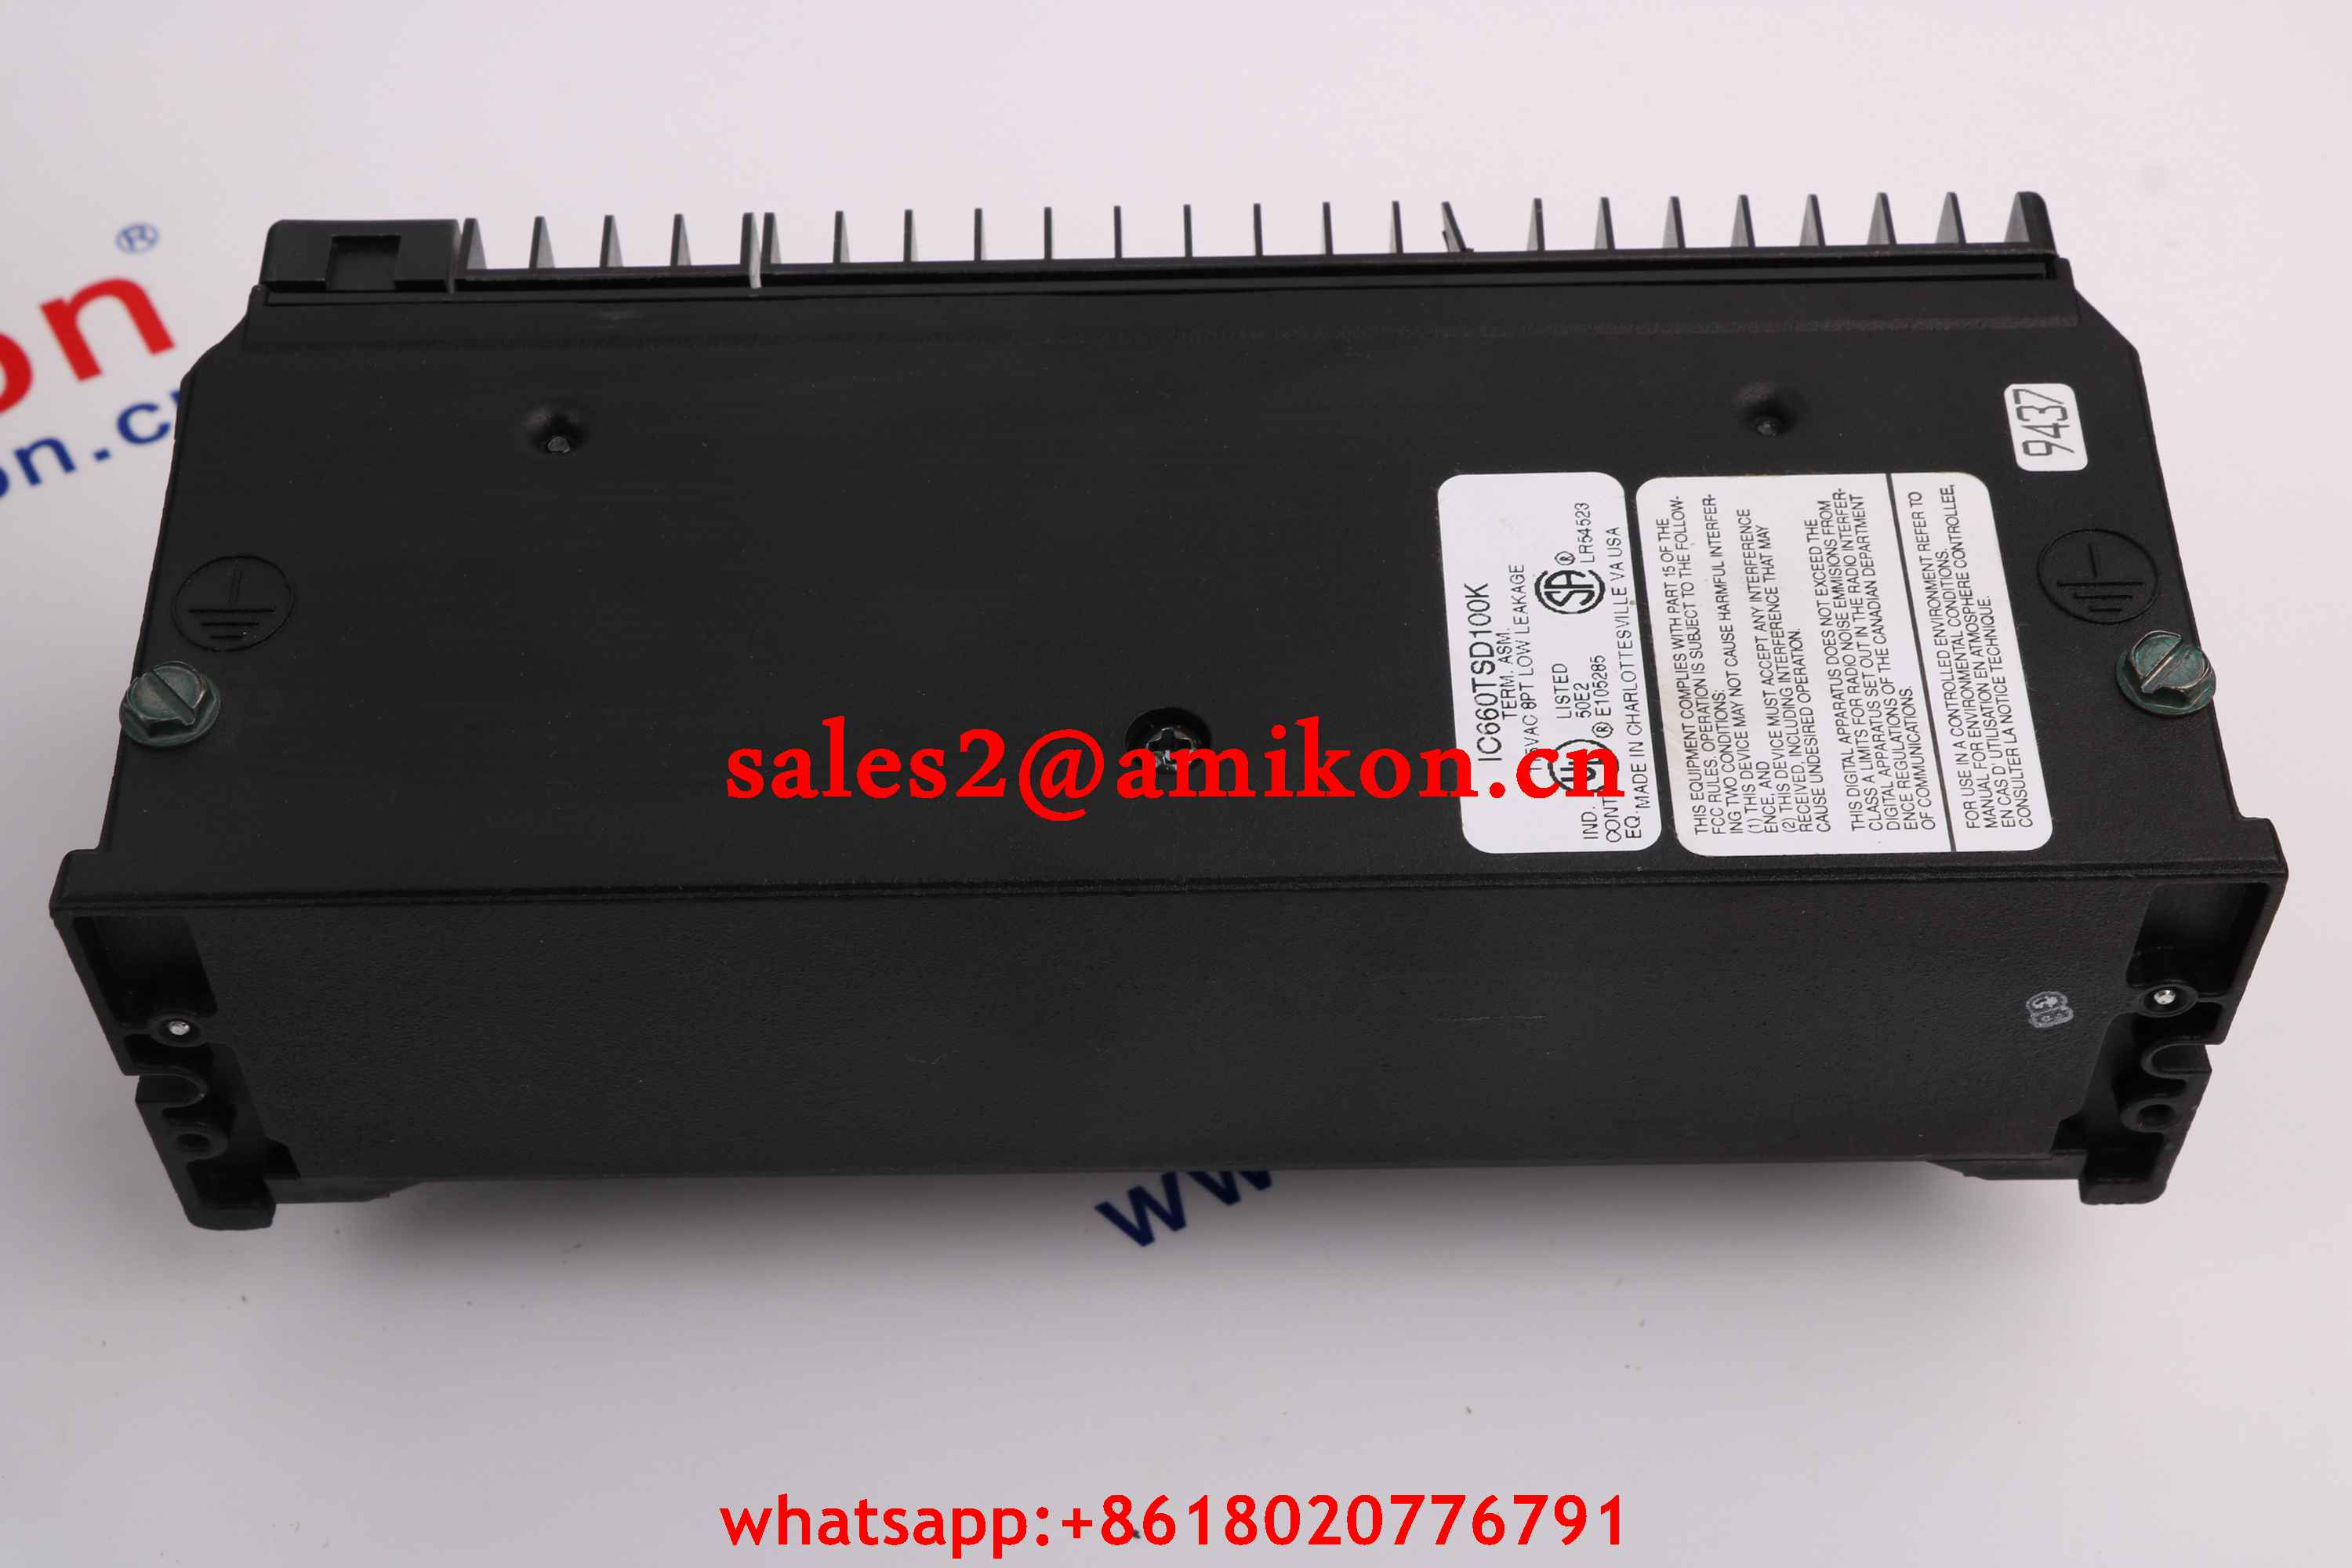 GE FANUC DS200IMCPG1AEA  new and Original USA 1 year warranty